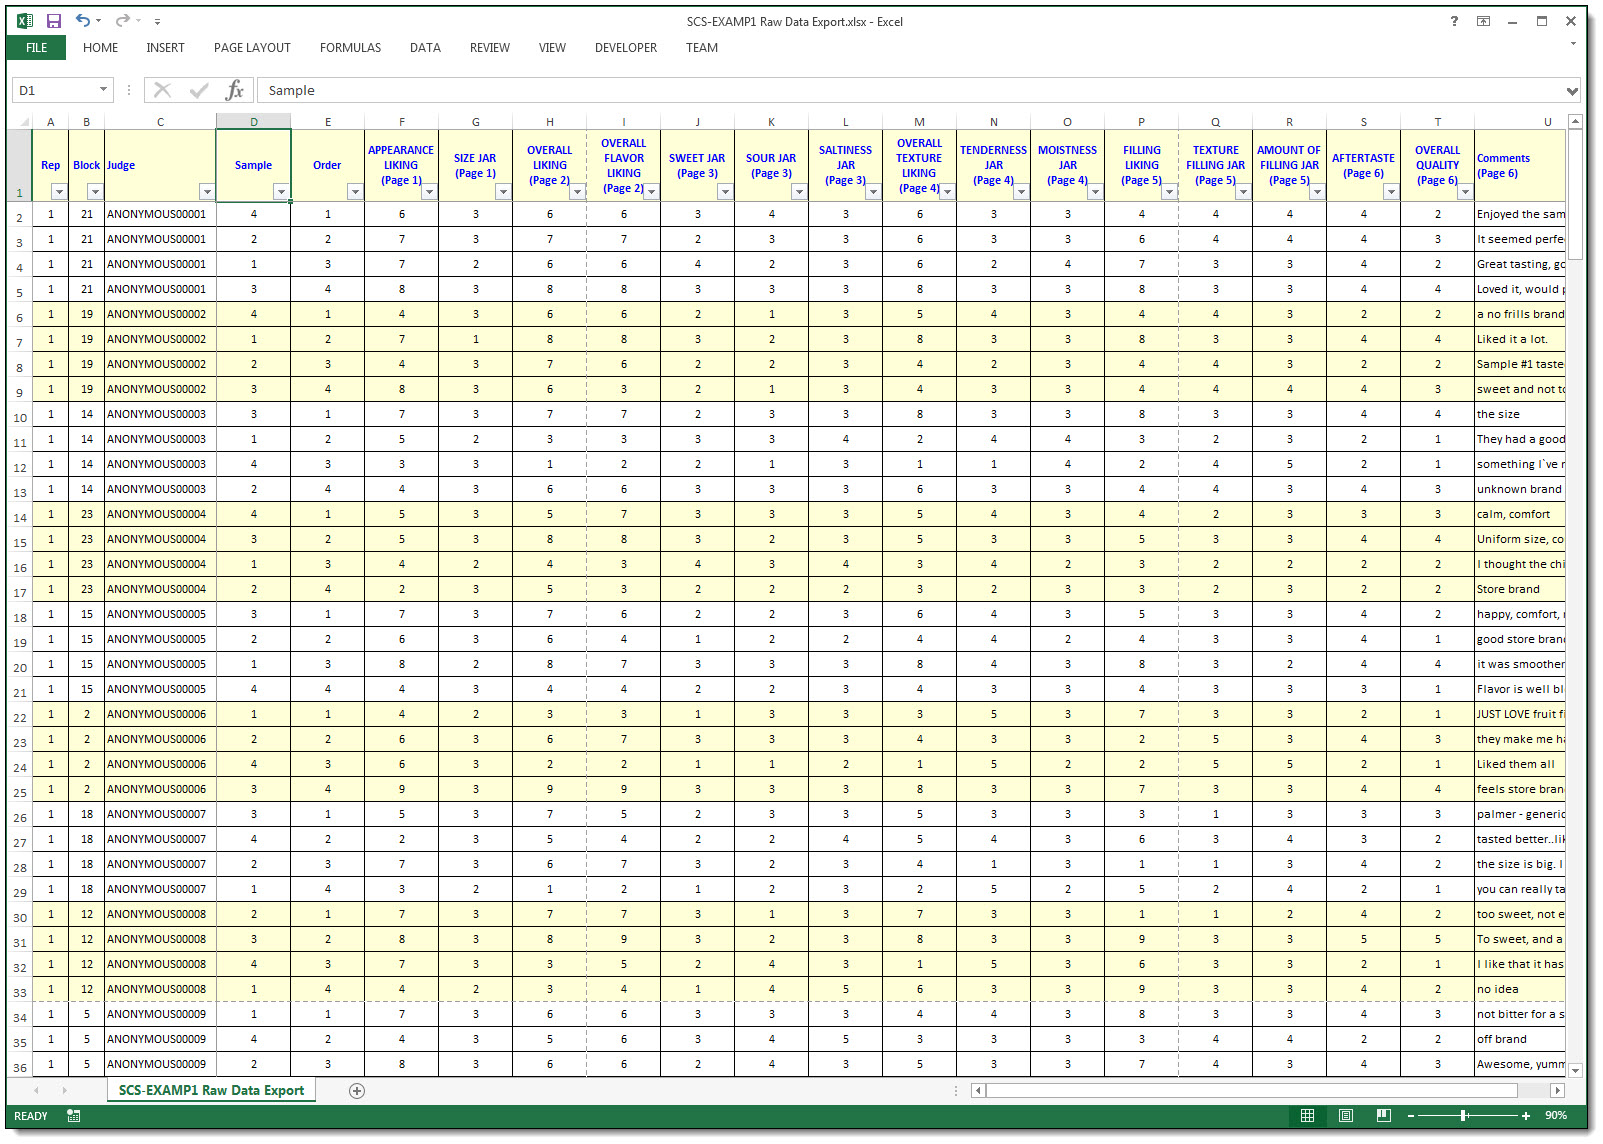 how to get summary statistics in excel